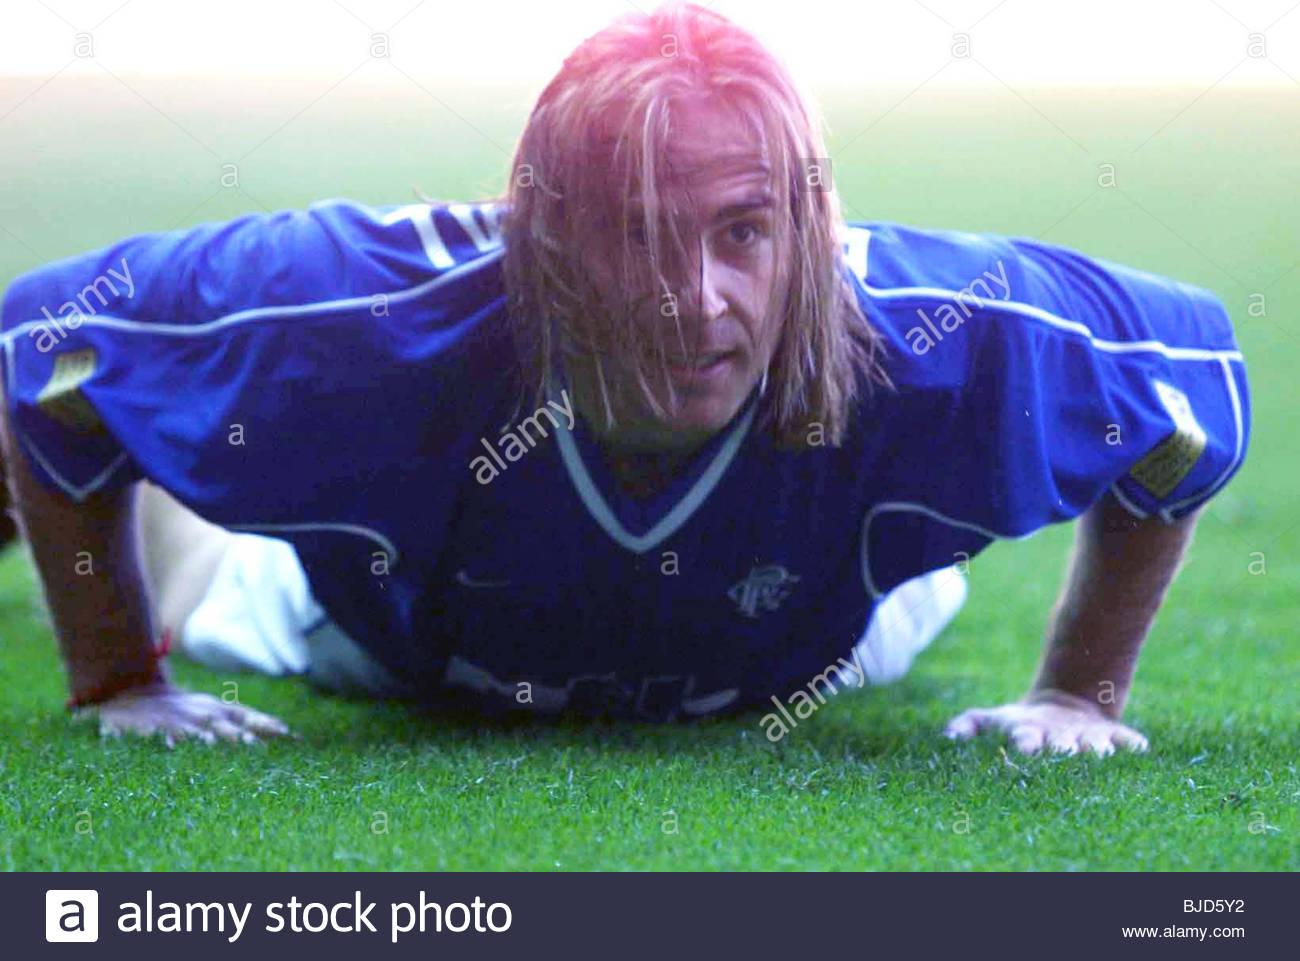 30/04/00 SPL RANGERS V DUNDEE (3-0) IBROX - GLASGOW Rangers' Sebastian Rozental picks himself up after missing - Stock Image